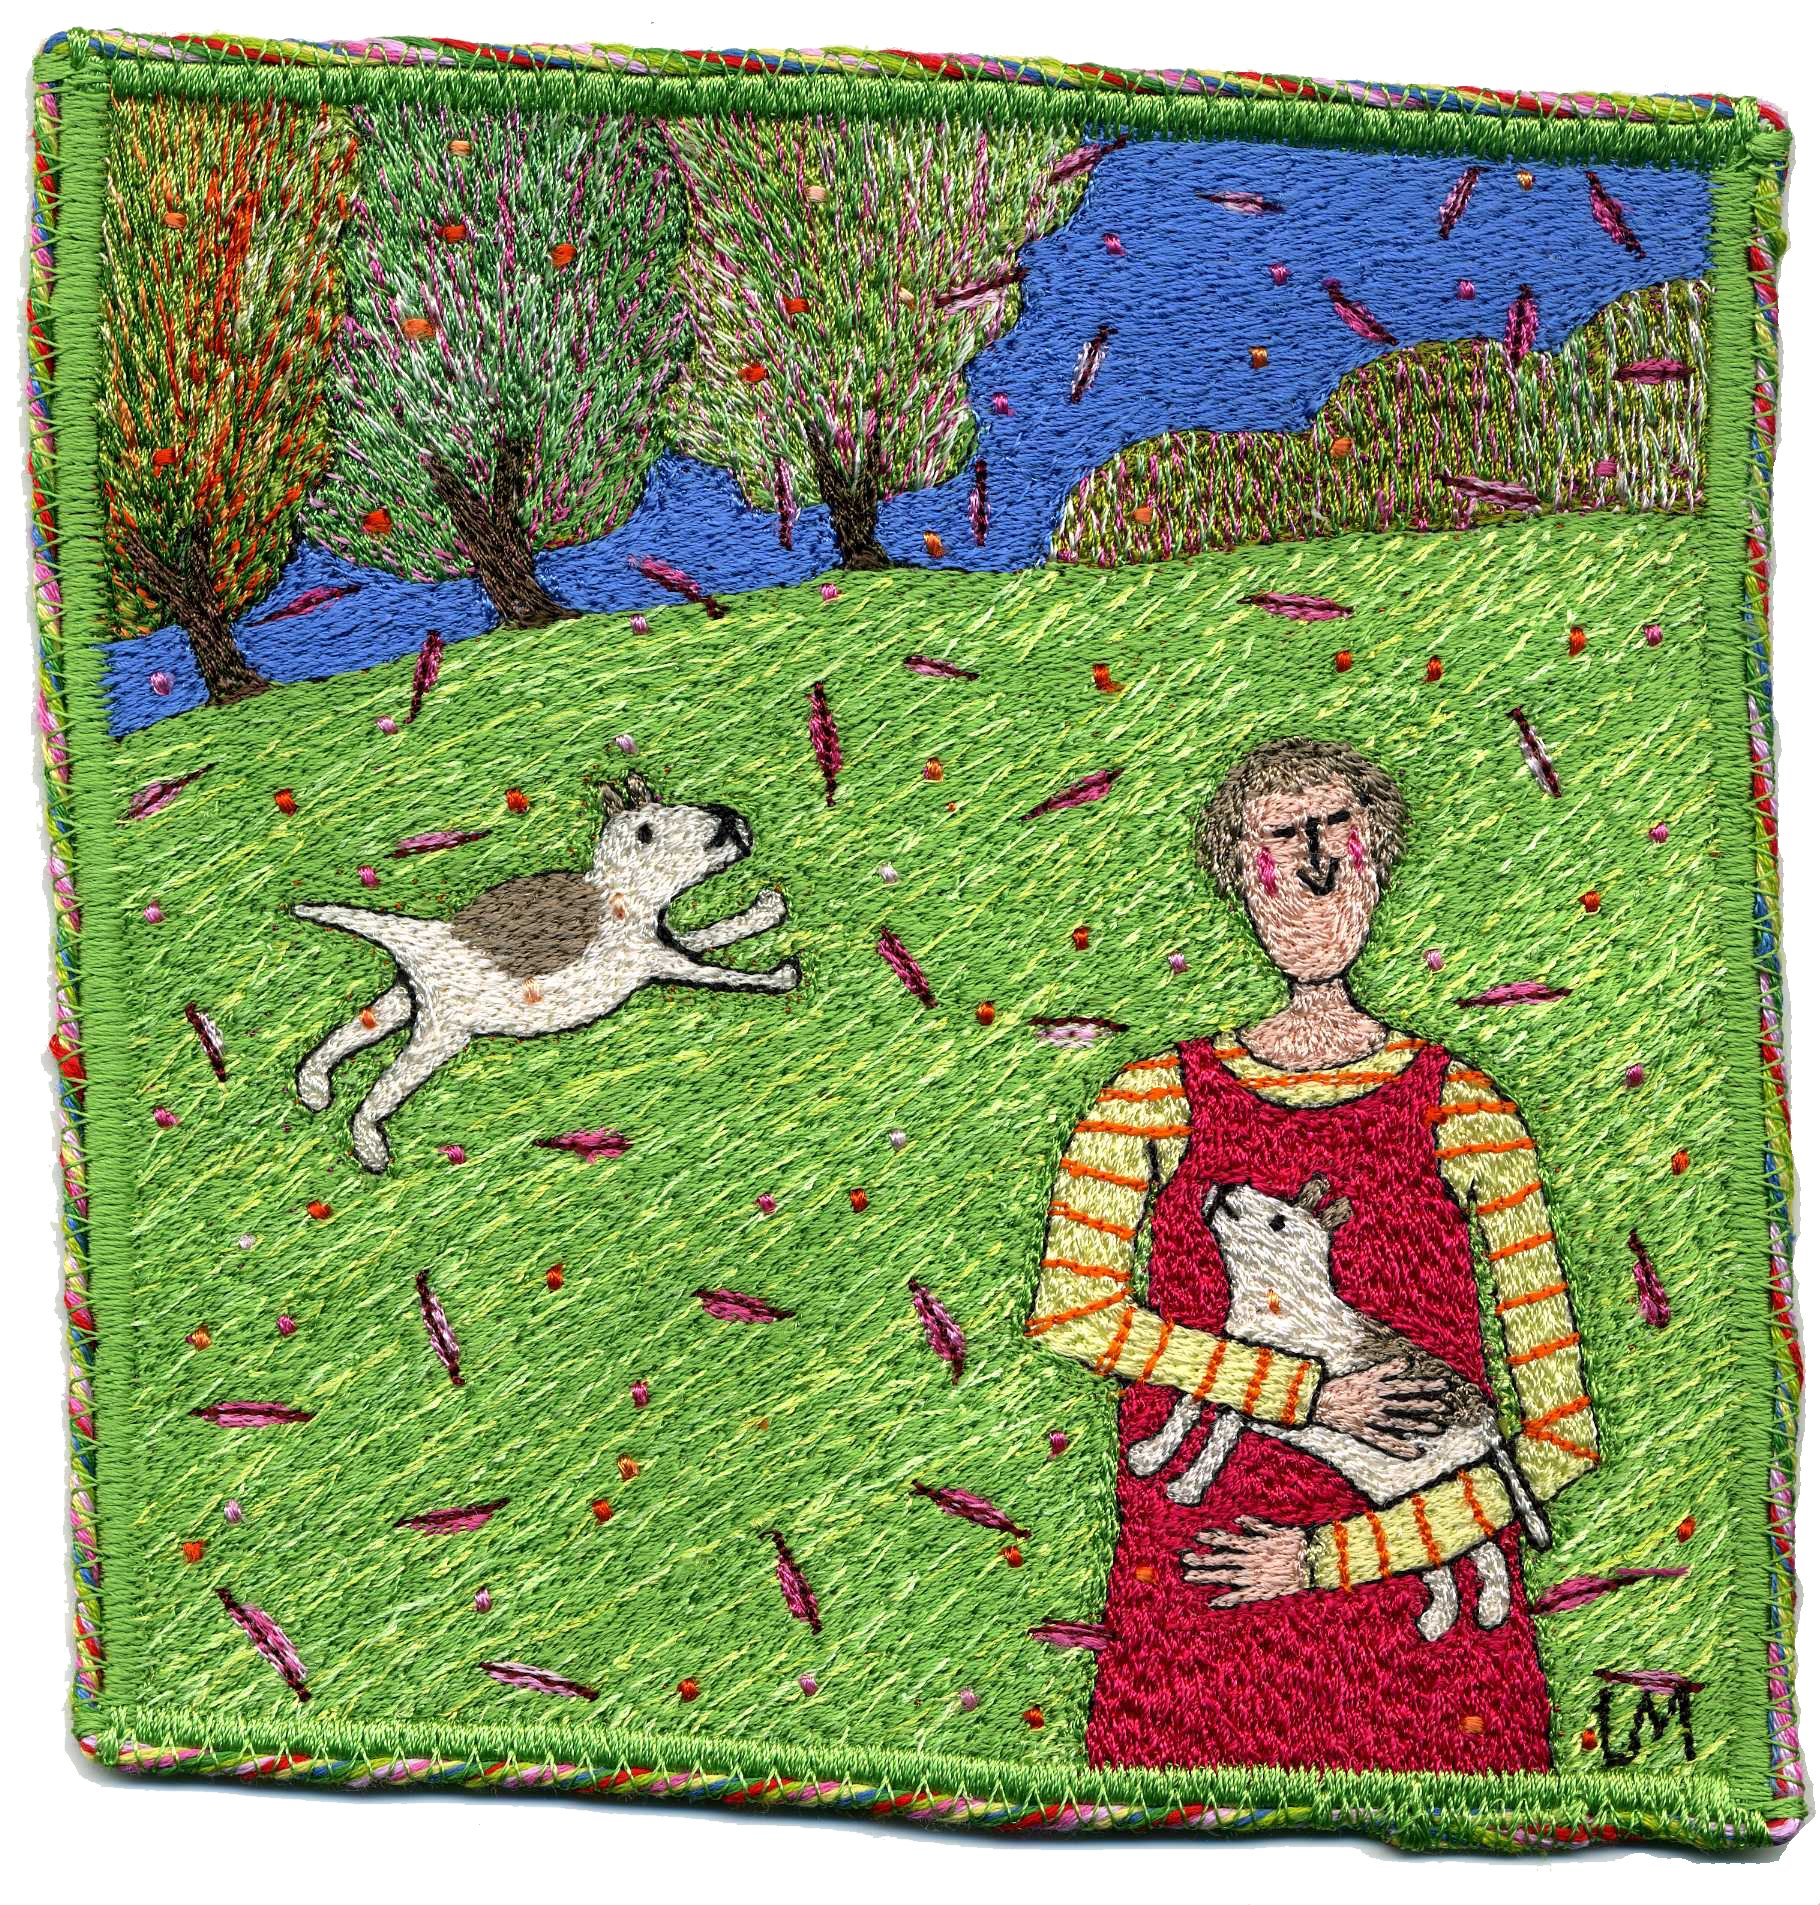 Girl with Two Dogs. Machine embroidery by Linda Miller